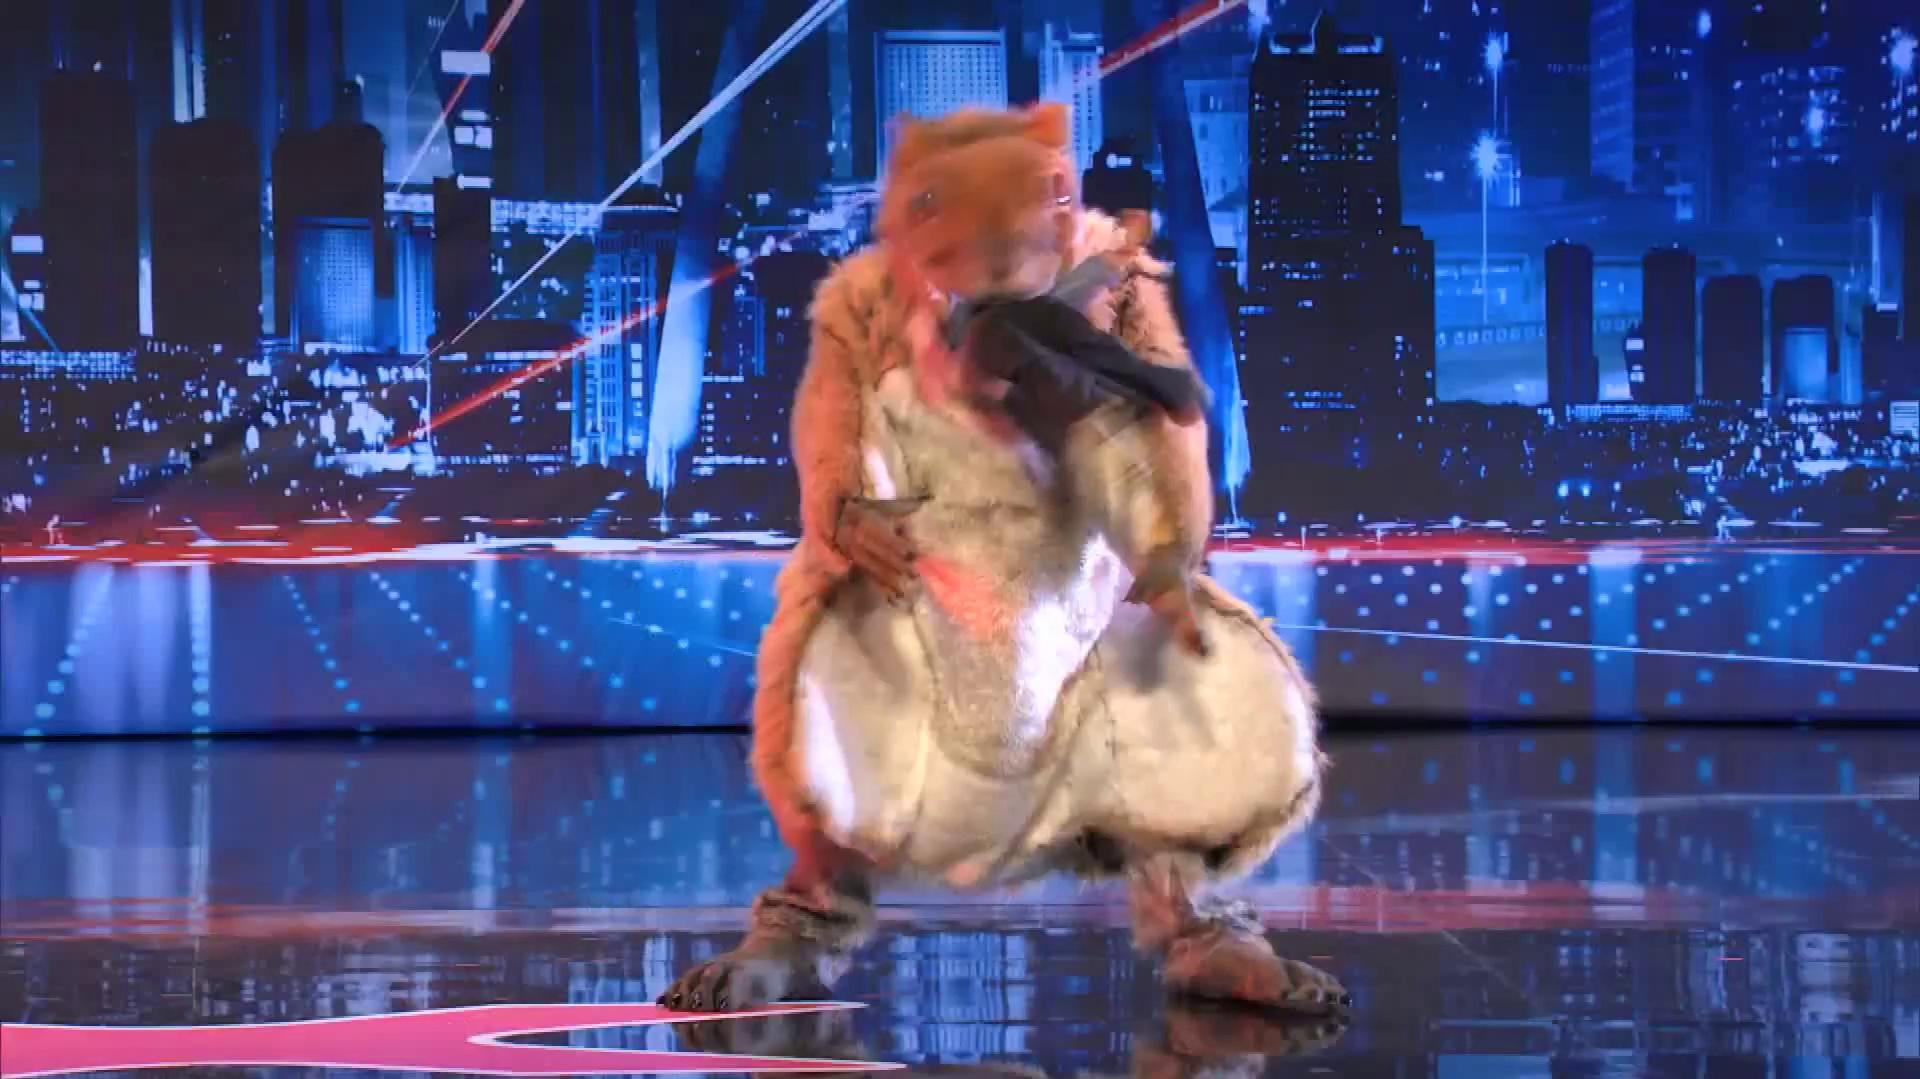 America's Got Talent 2013 - Season 8 - 103 - Johnny Jetpack - Giant Squirrel Swallows a Little Boy